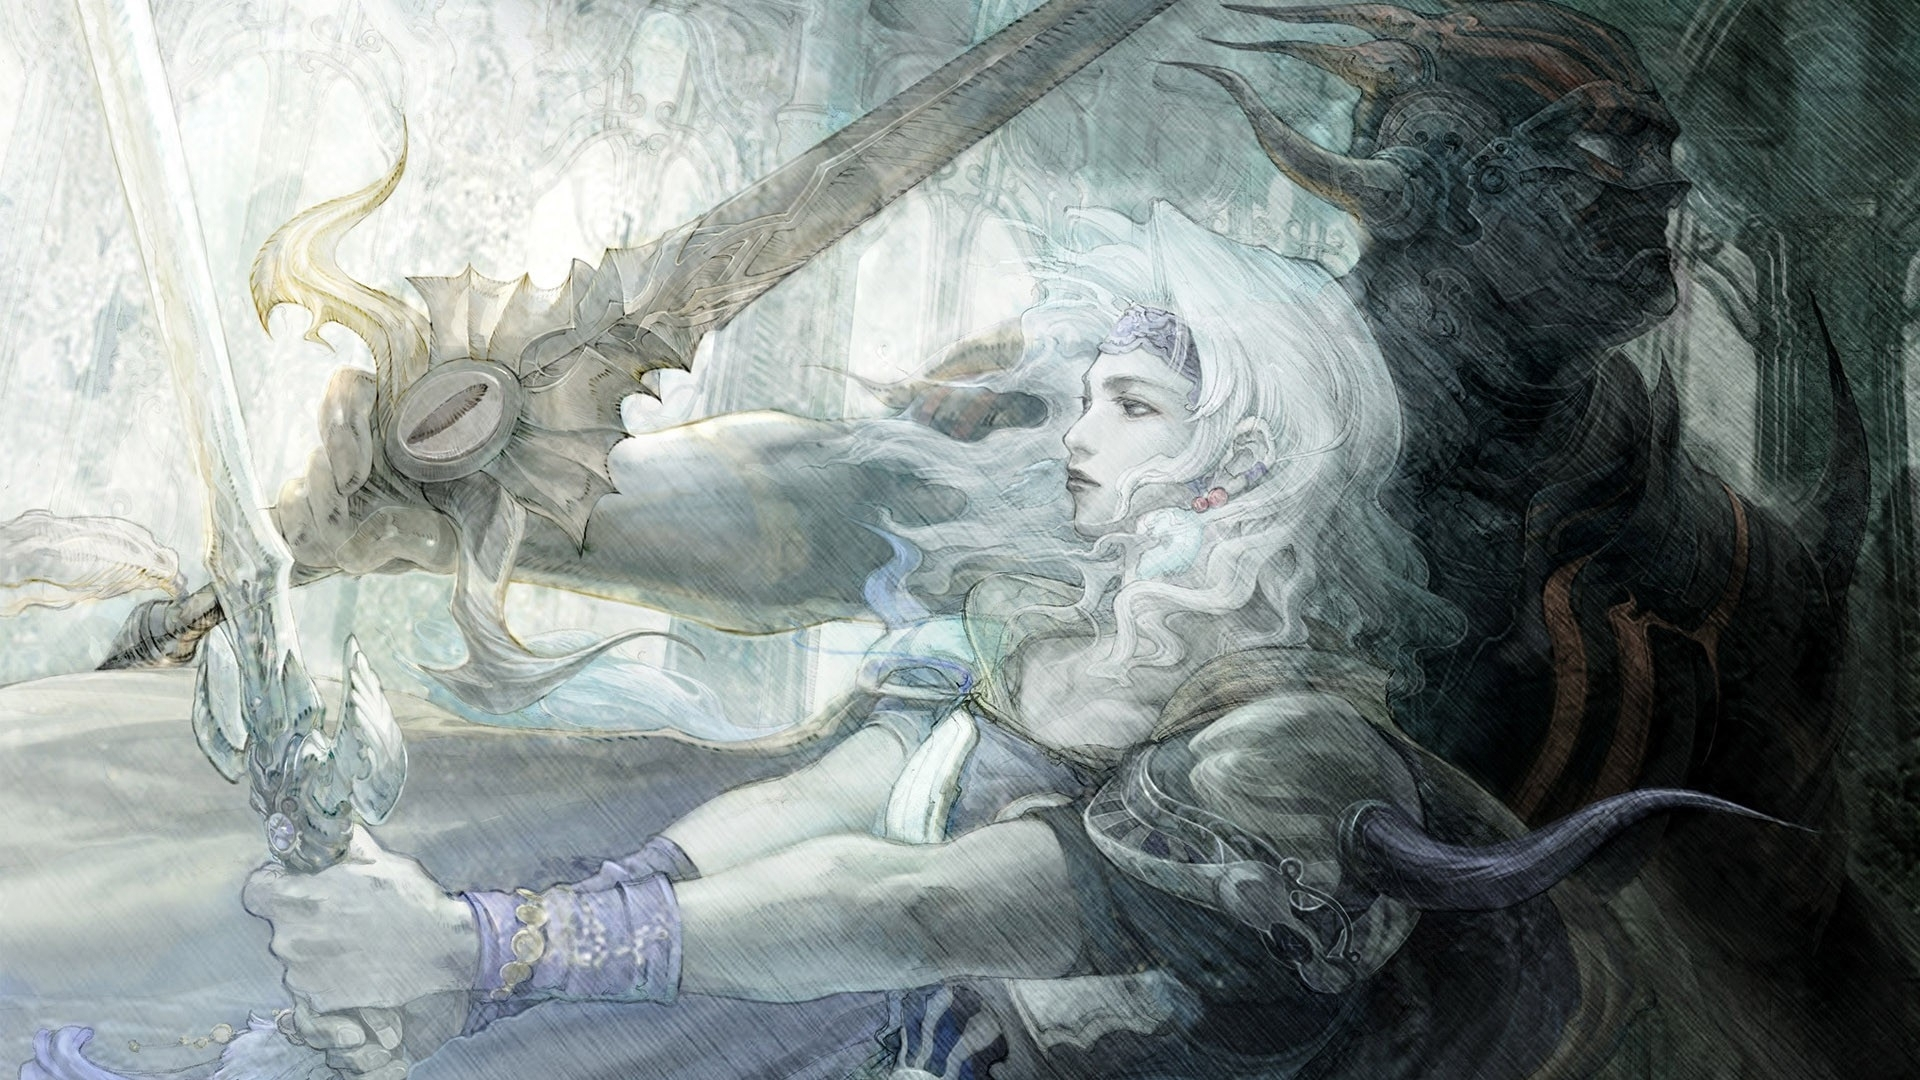 final fantasy iv full hd wallpaper and background image | 1920x1080